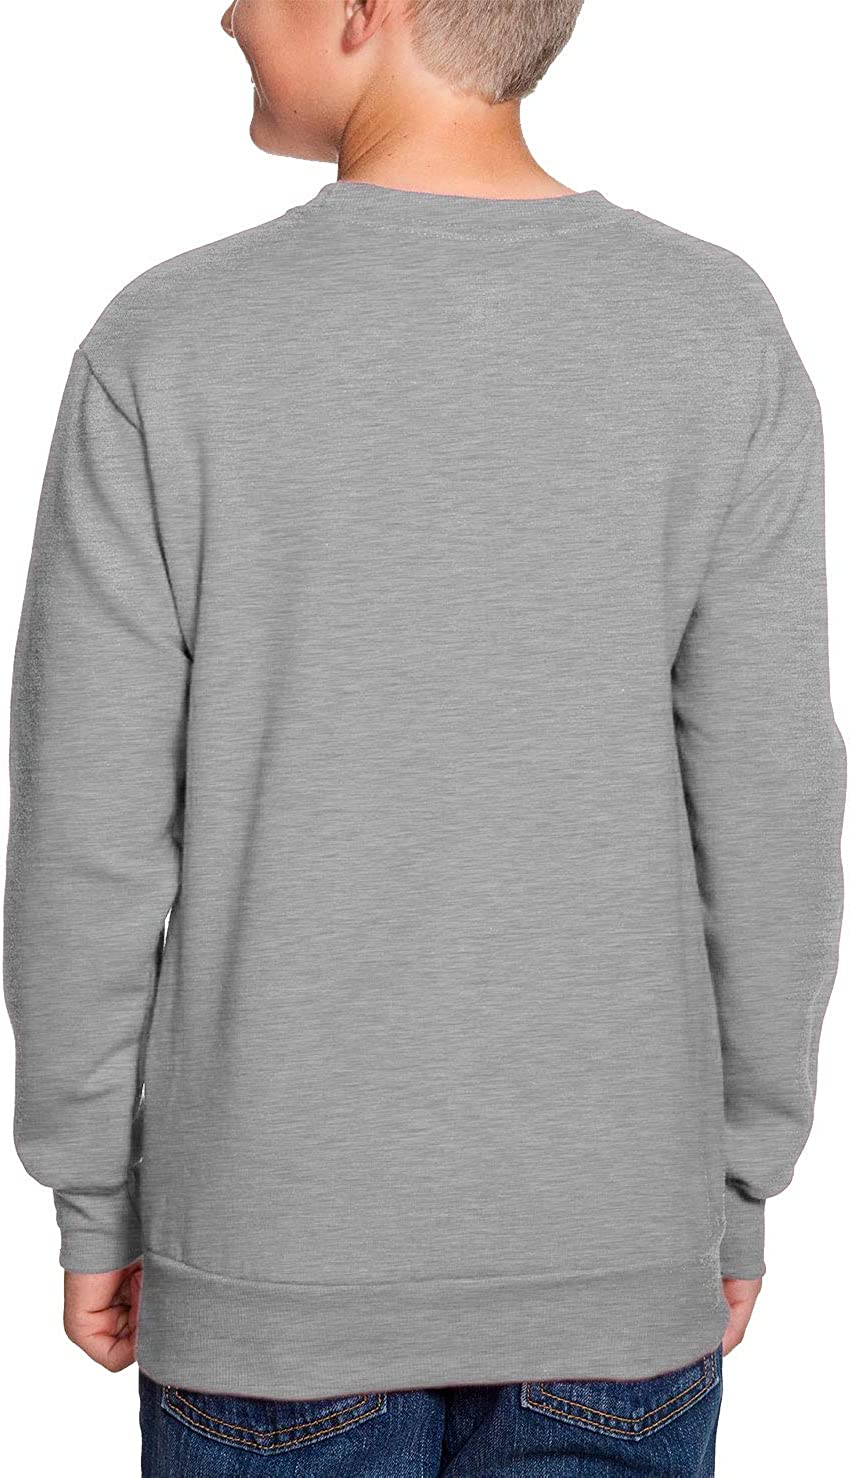 Light Gray, X-Large Back to School Youth Fleece Crewneck Sweater HAASE UNLIMITED Hello 4th Grade